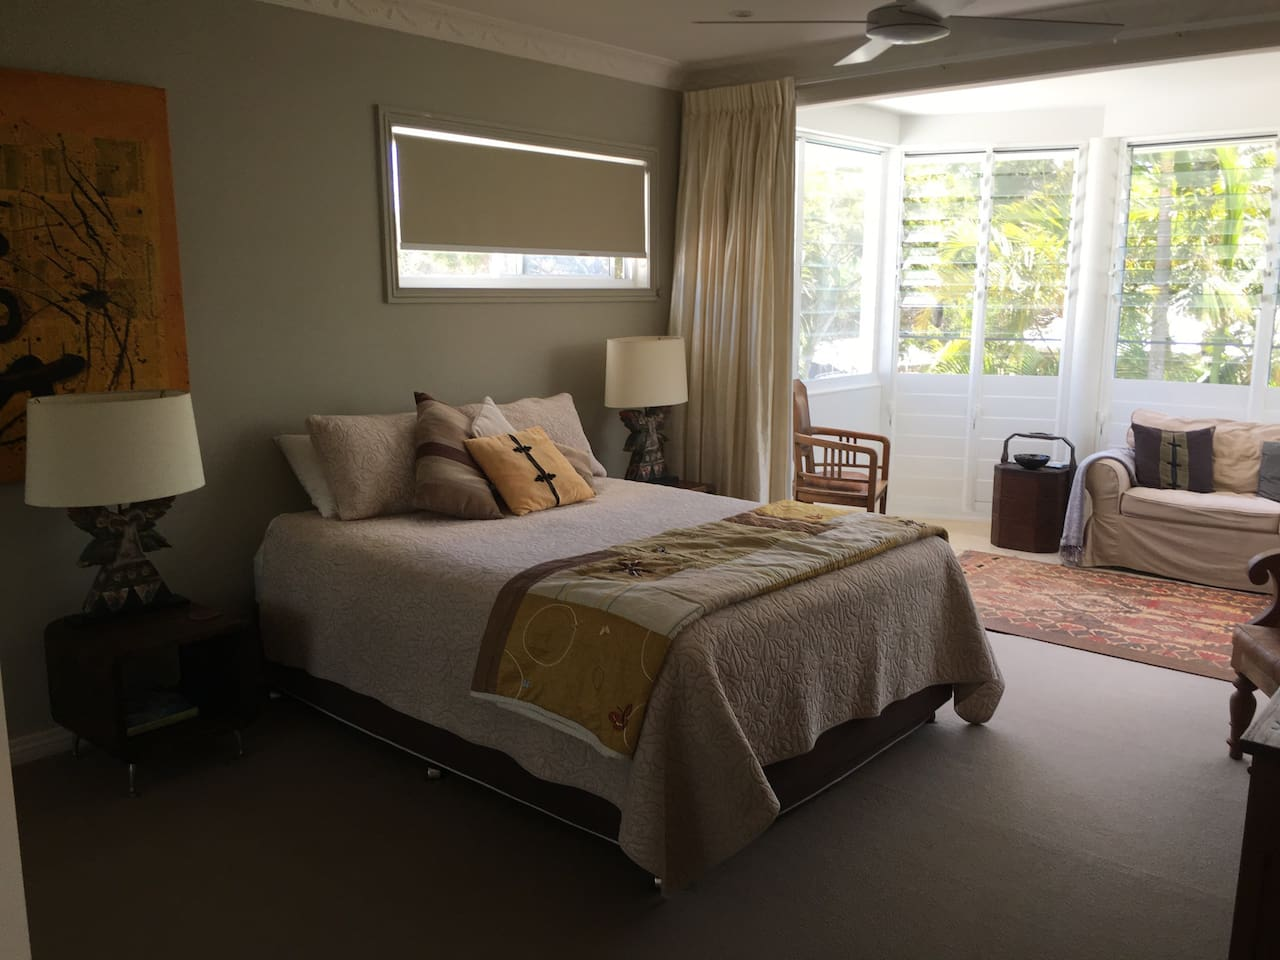 Queen size bed in peaceful setting with sitting area and desk